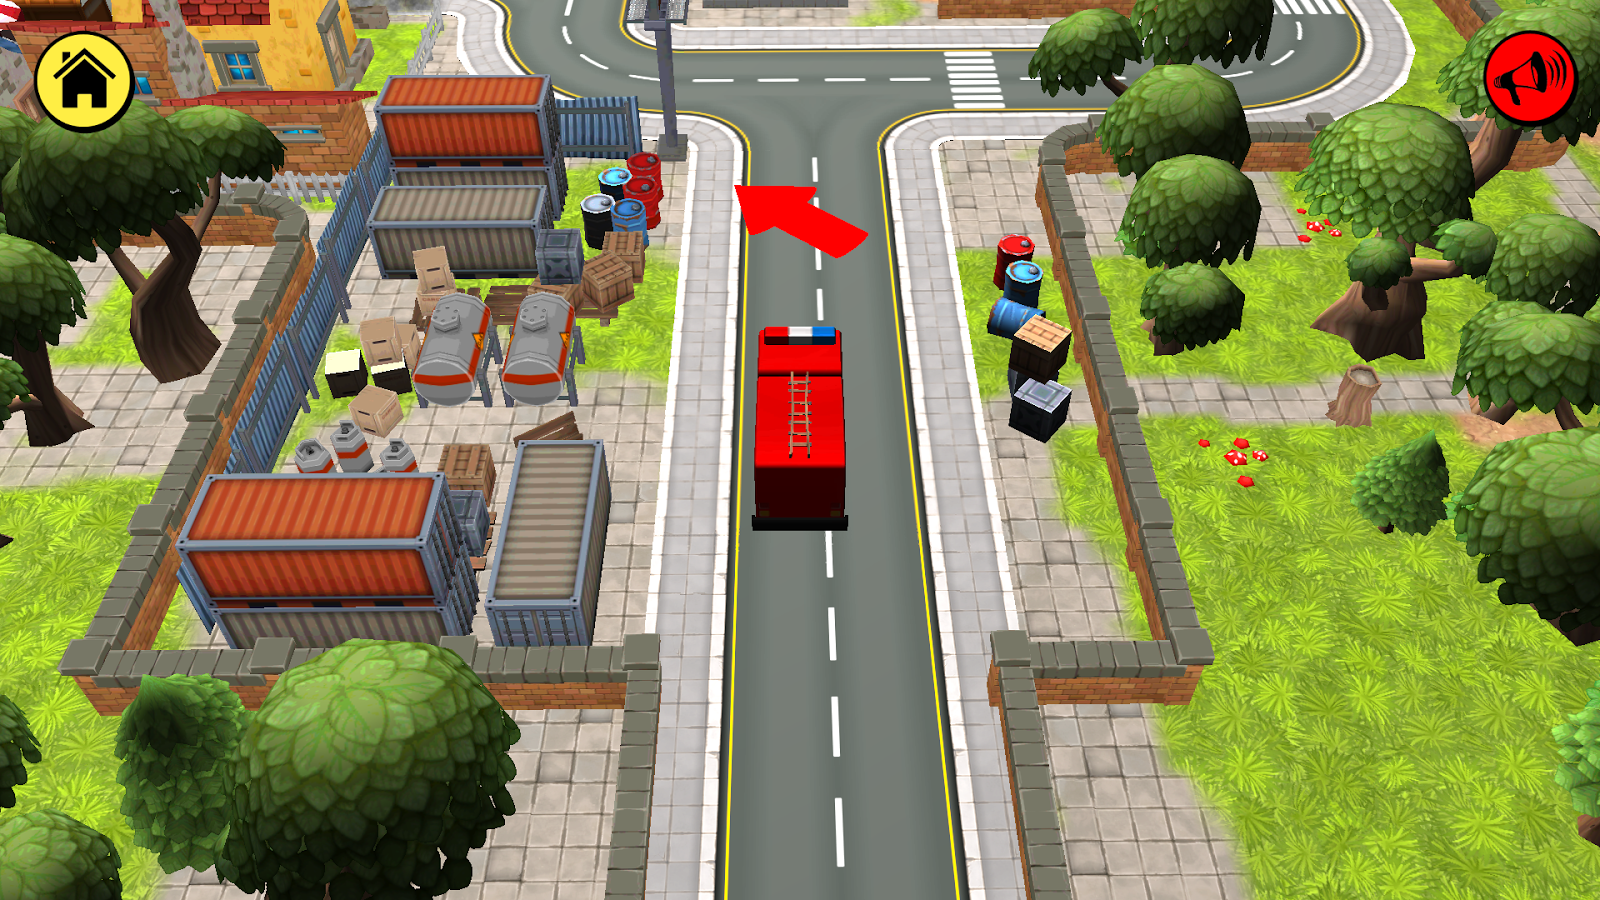 kidlo fire fighter free 3d rescue game for kids android apps